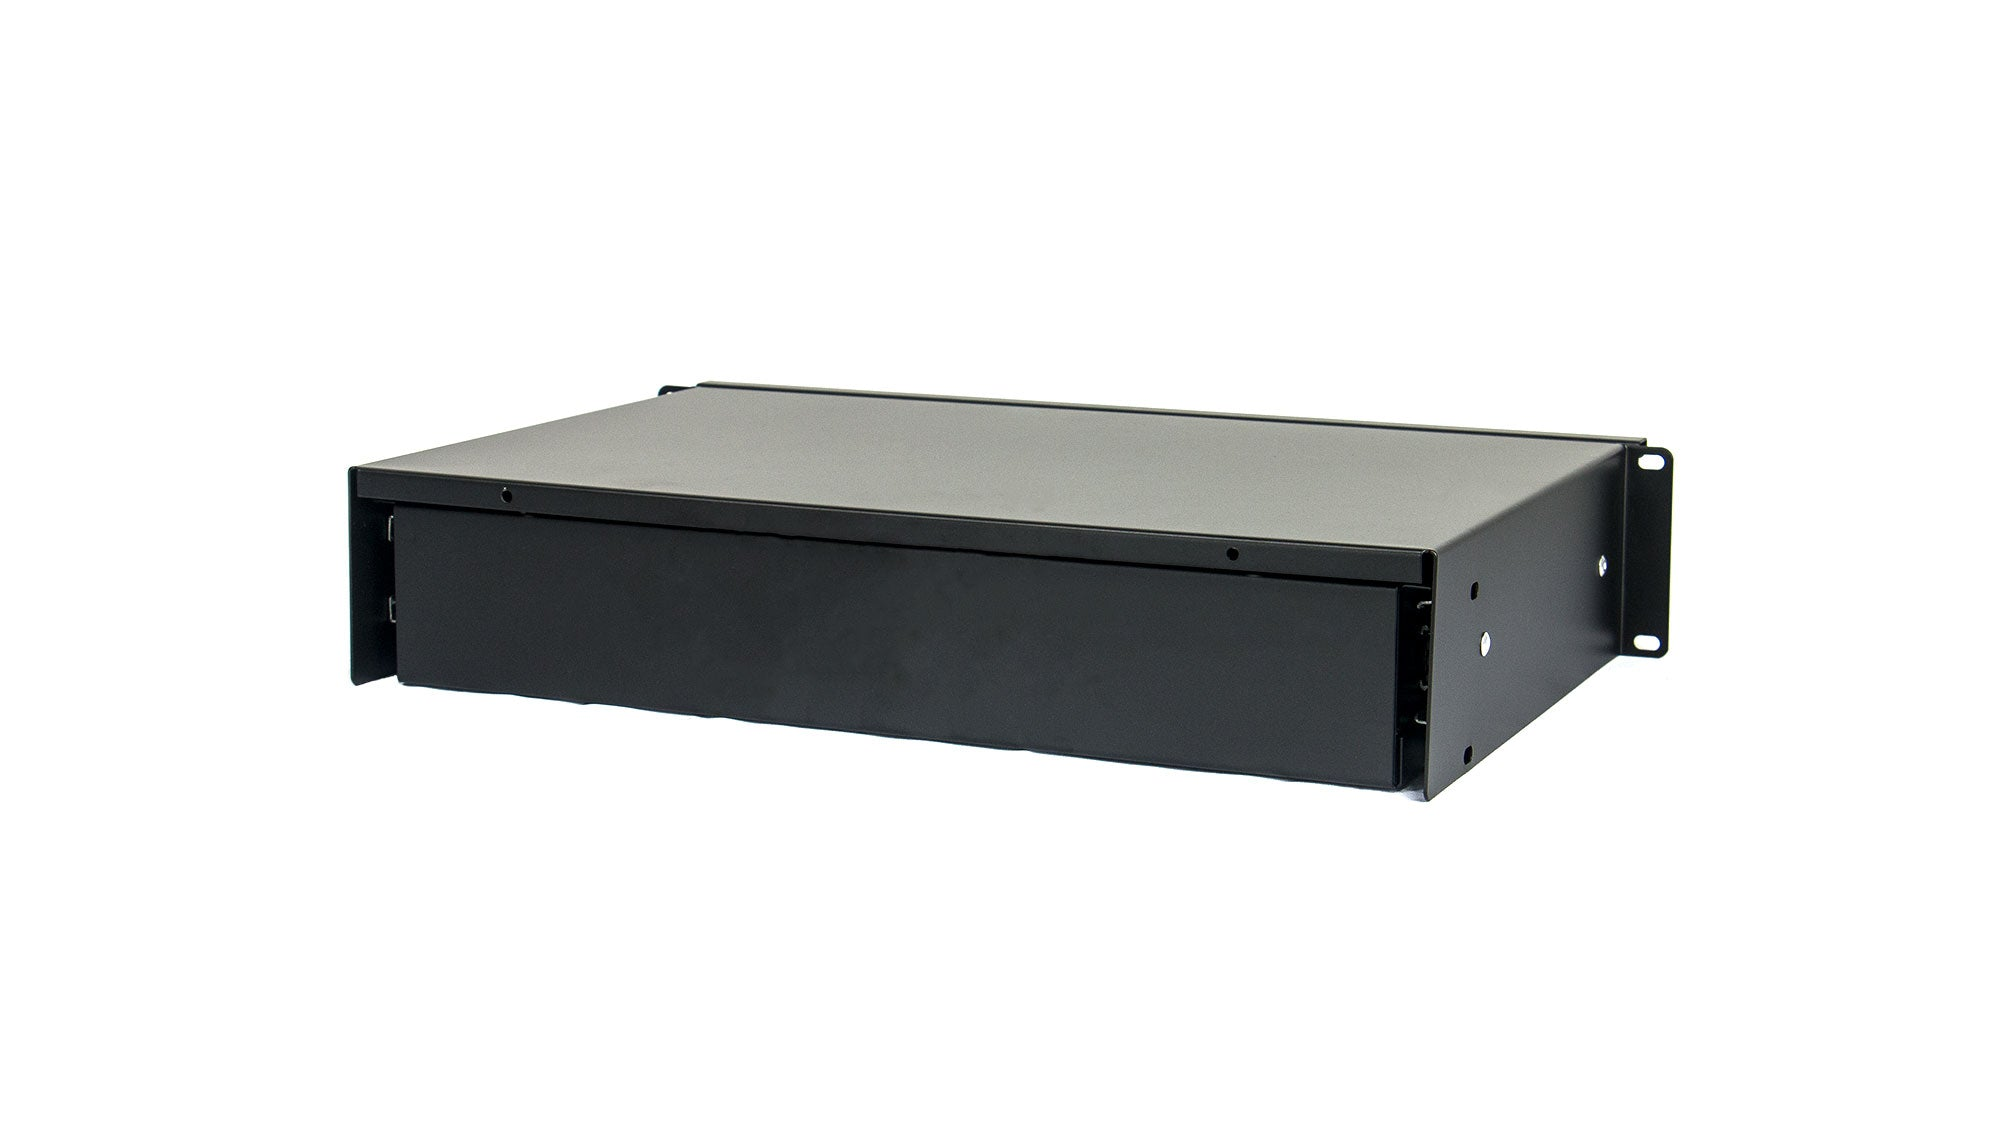 OSP HYC-2US 2 Space Shallow Rack Drawer